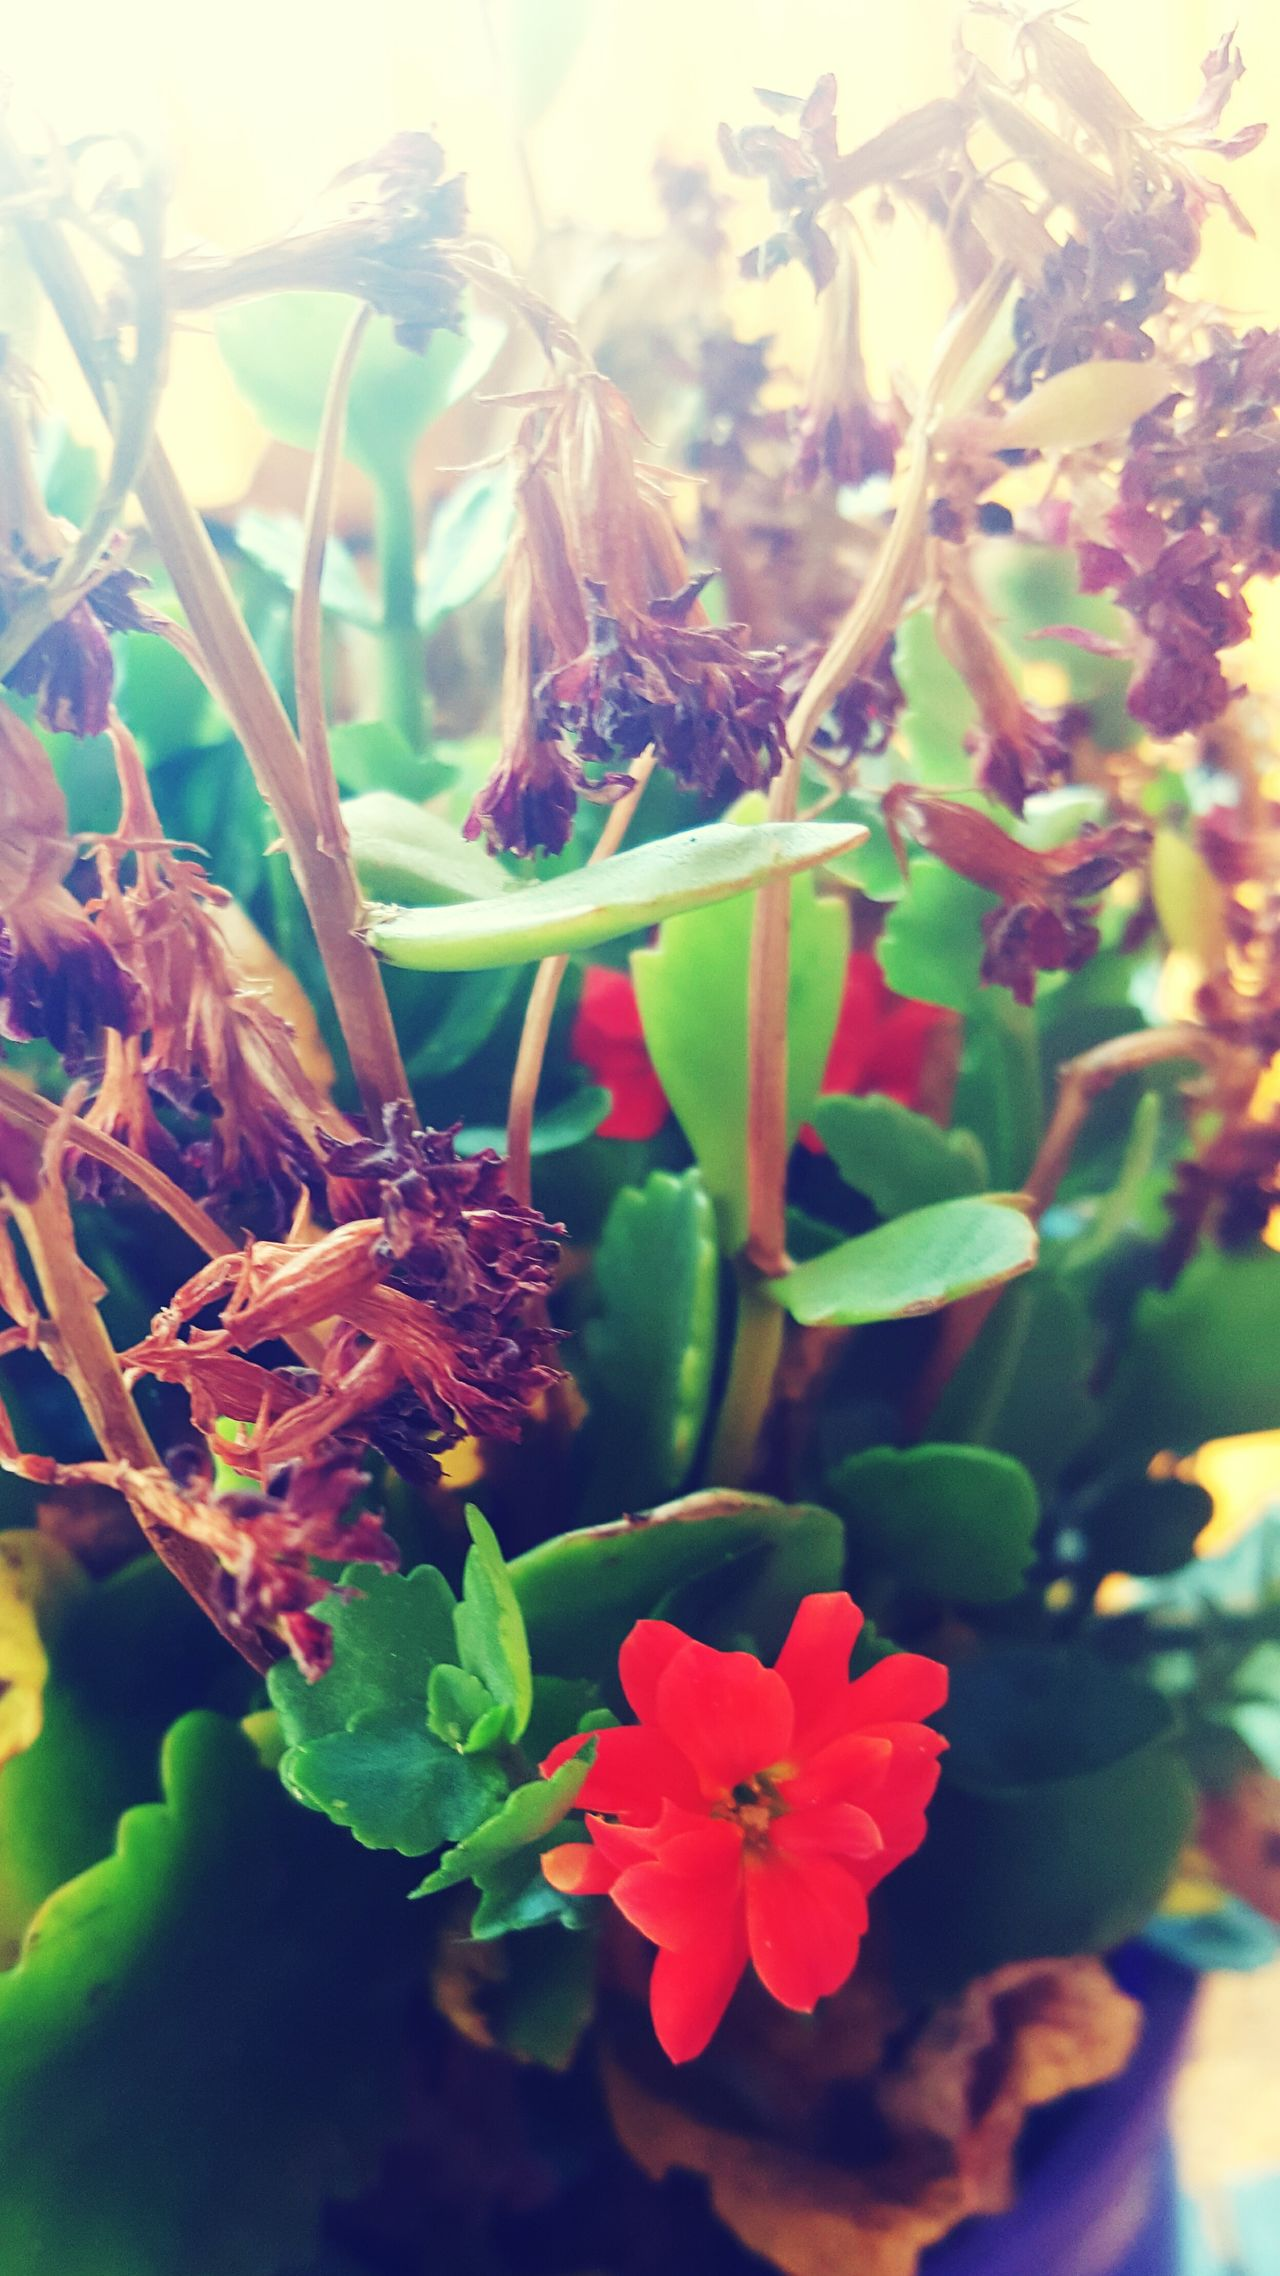 One remains - Kalanchoe Flowers Flowers,Plants & Garden Flower Photography Kalanchoe Withered Flowers Withered  Withered Plants